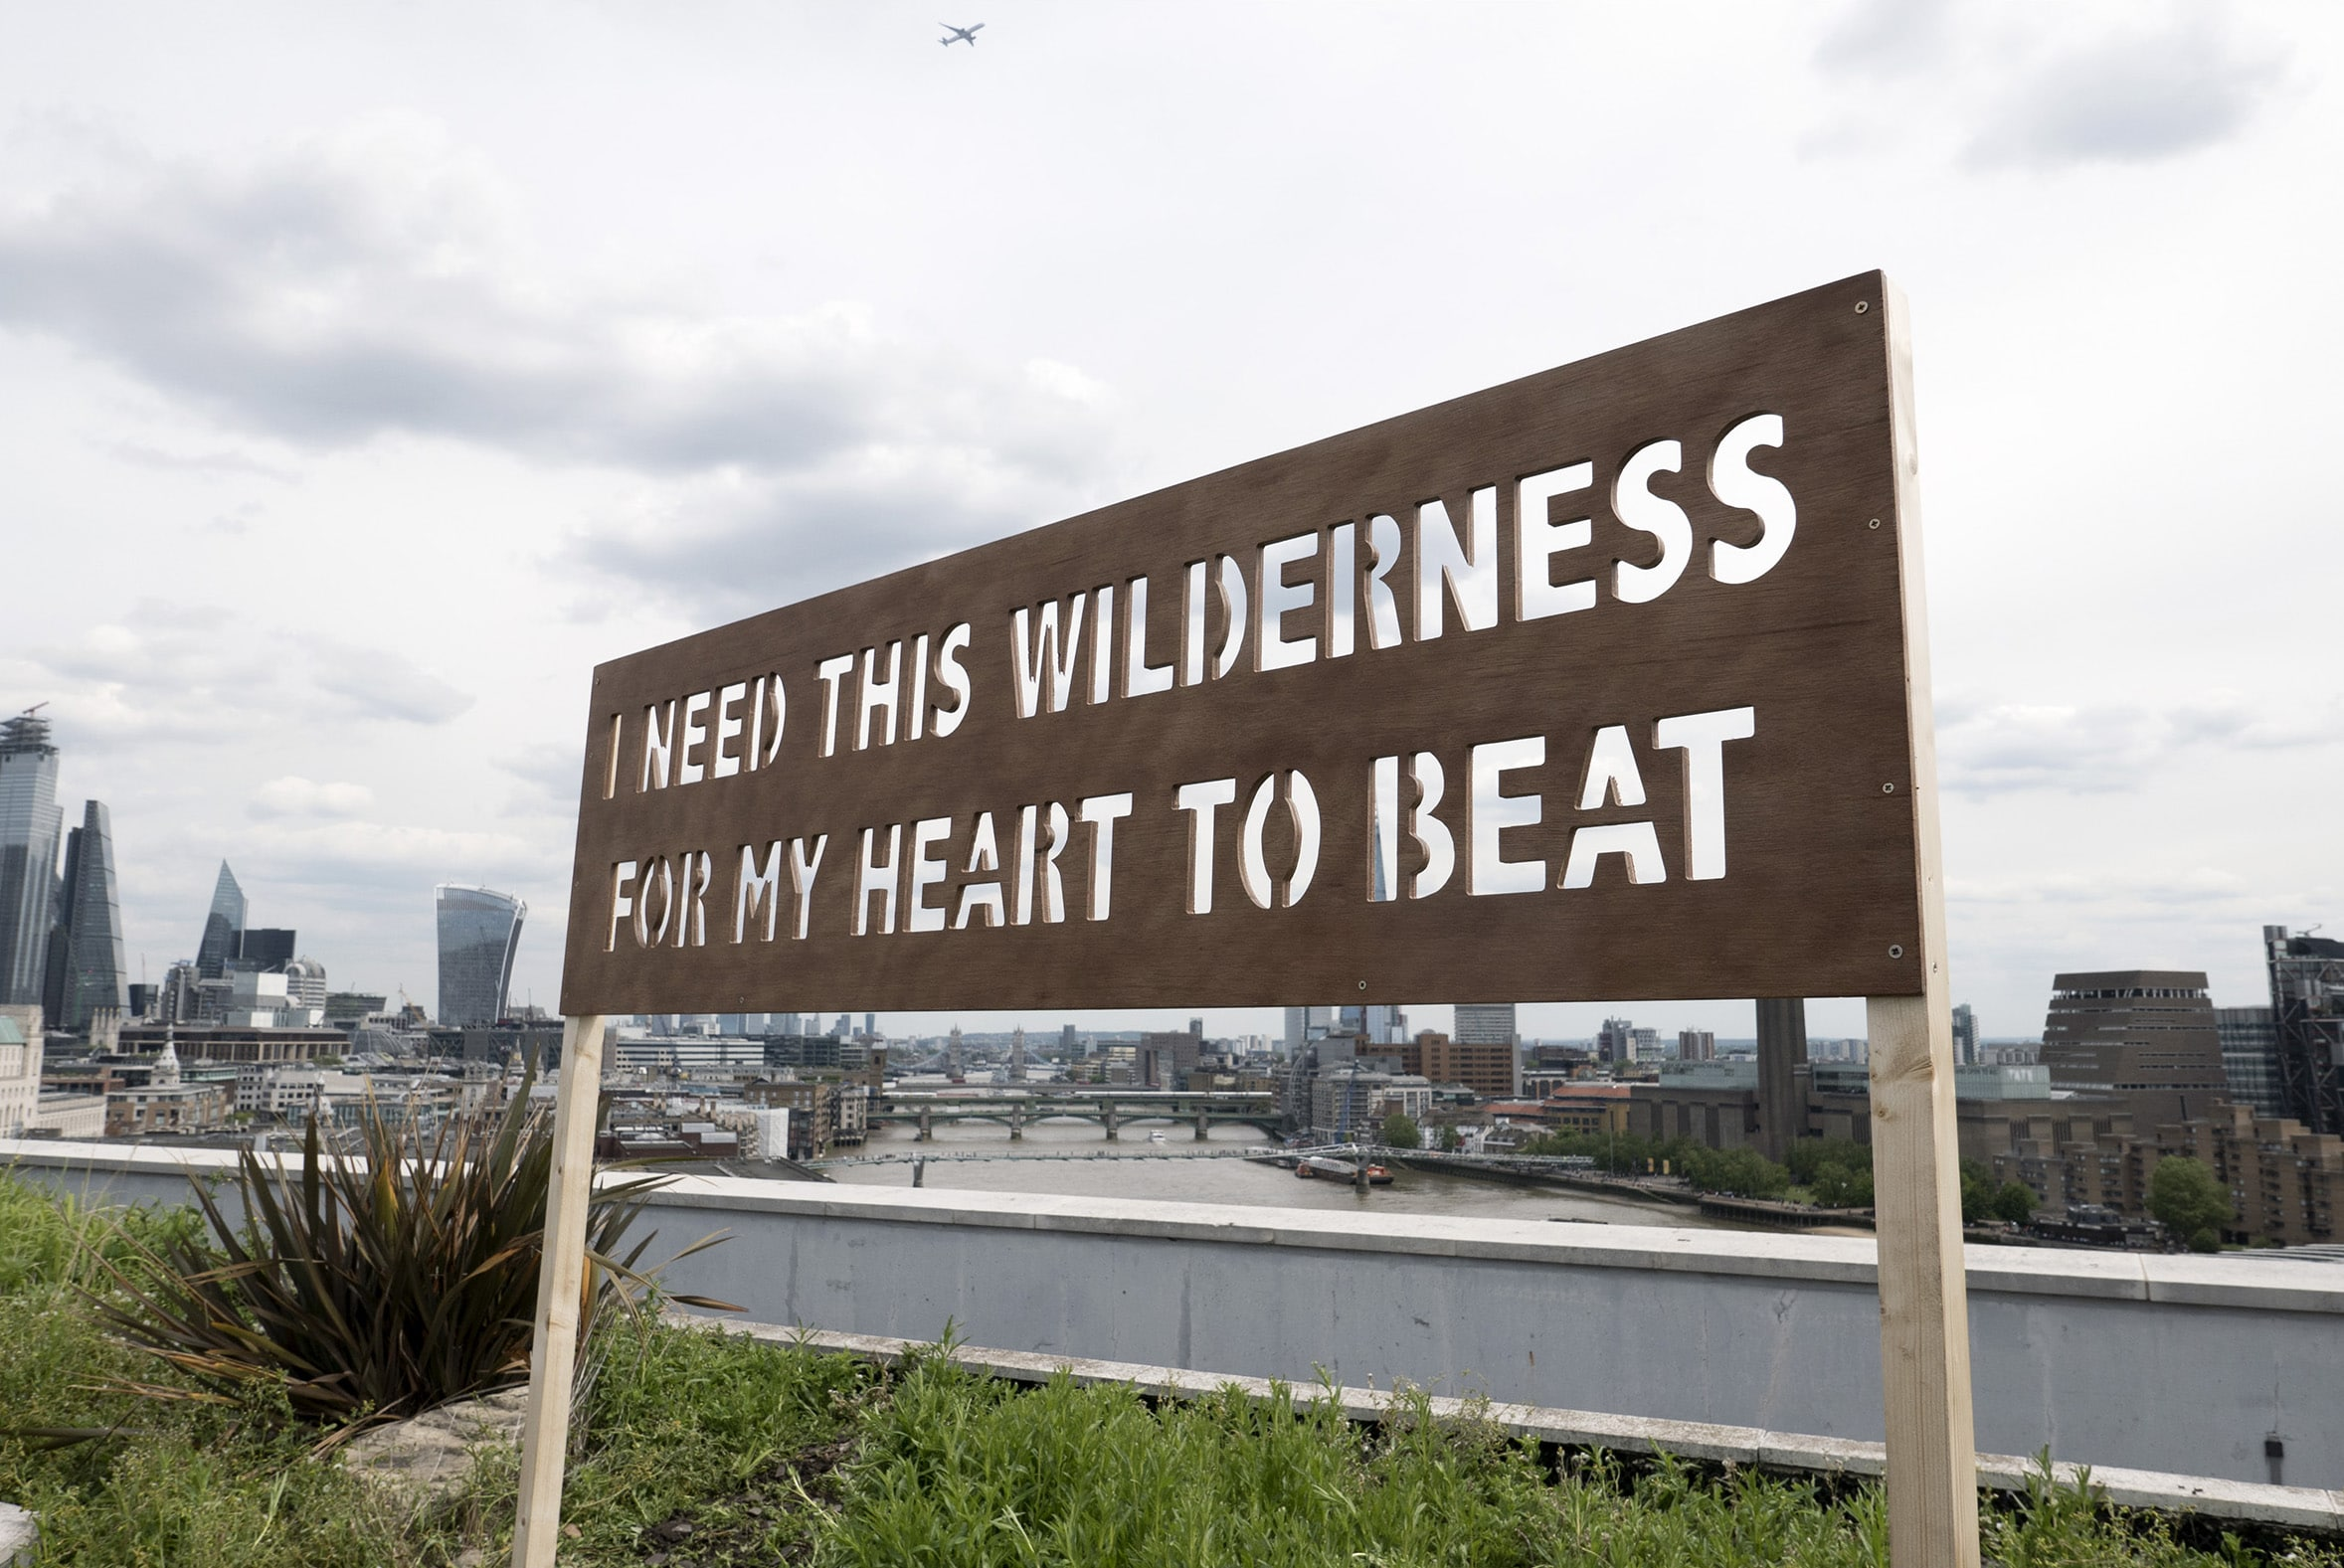 I Need This Wilderness For My Heart To Beat